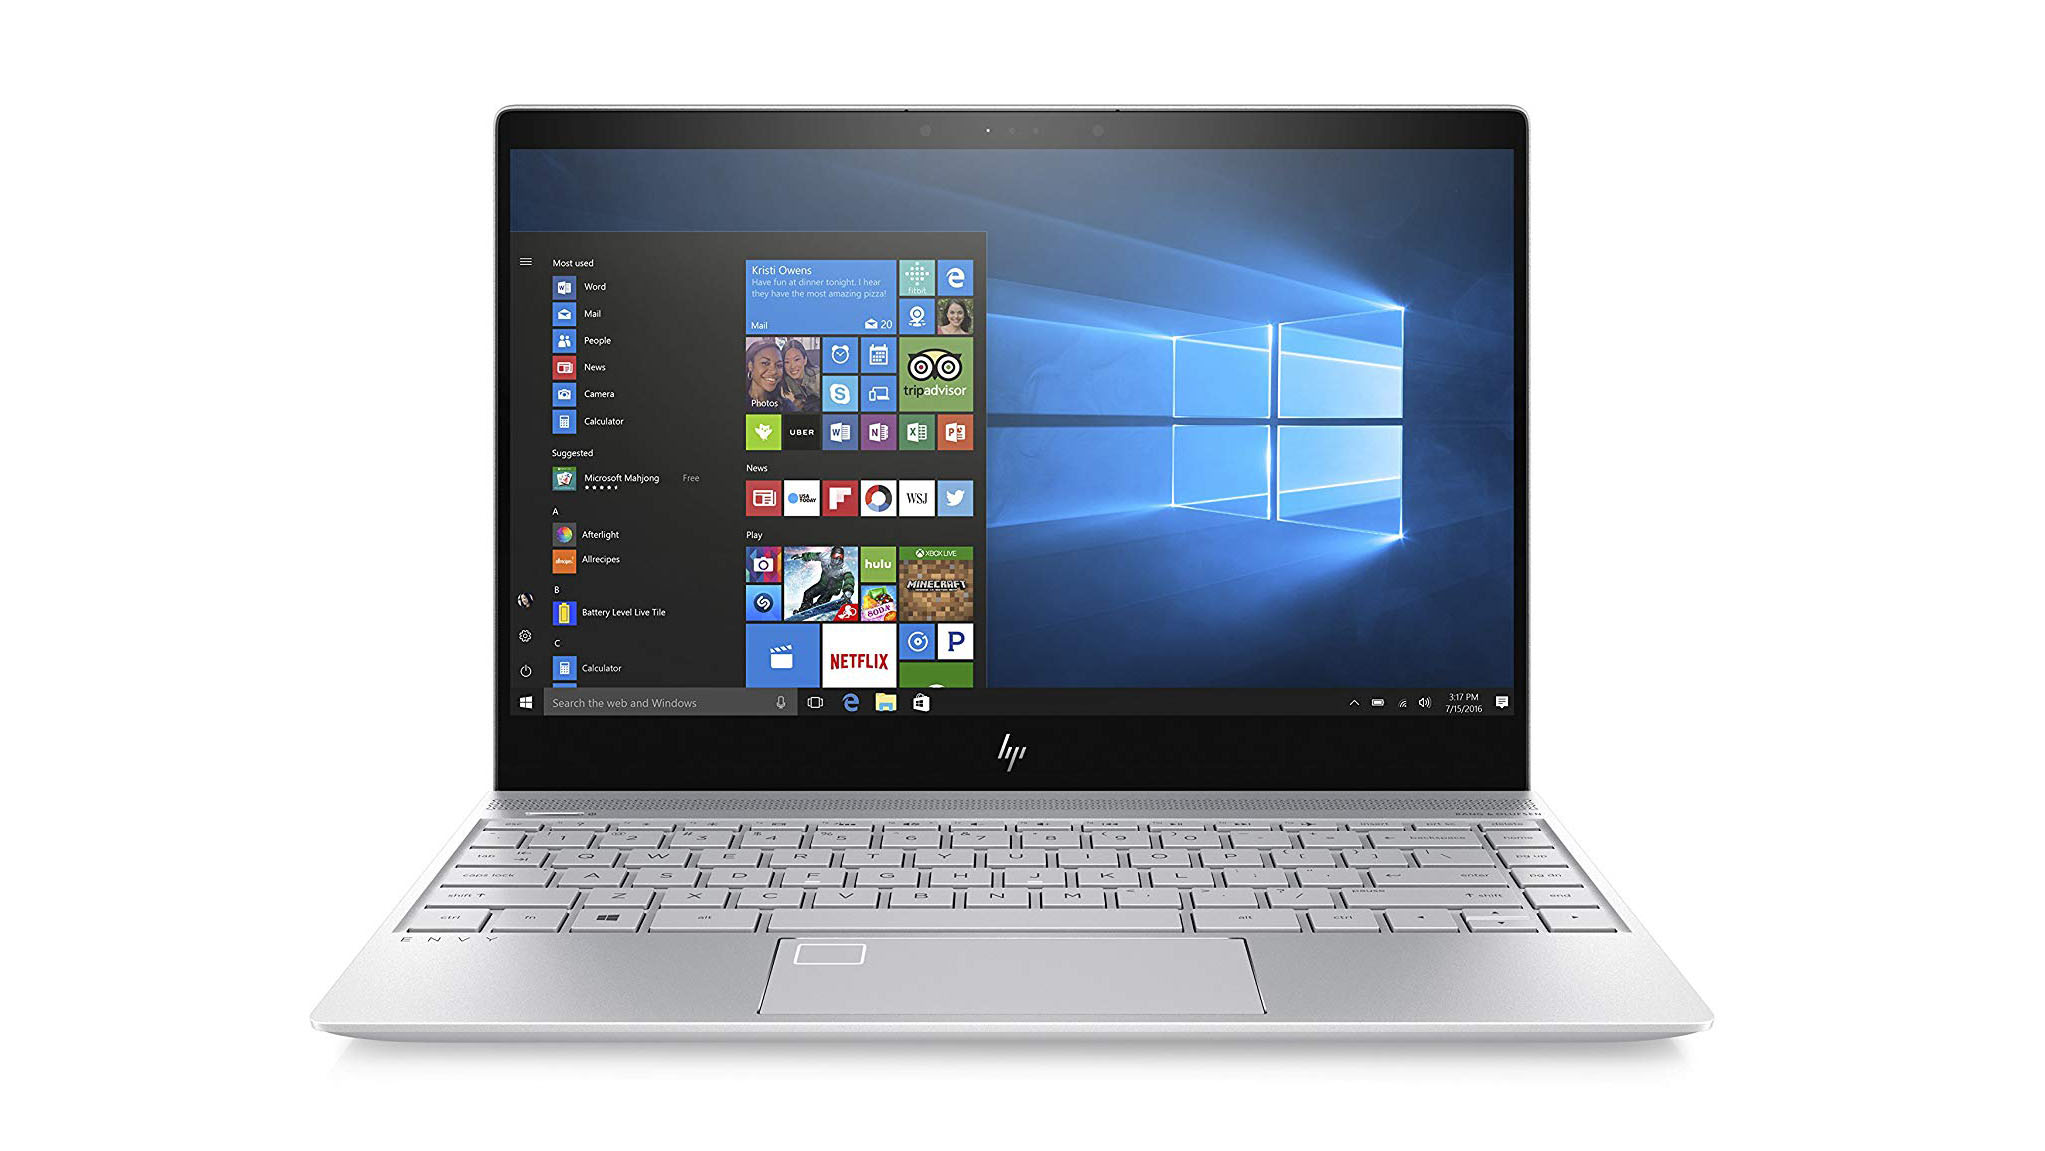 The HP Flash Sale Has the Best Deals on Laptops, Desktops and More Before Black Friday